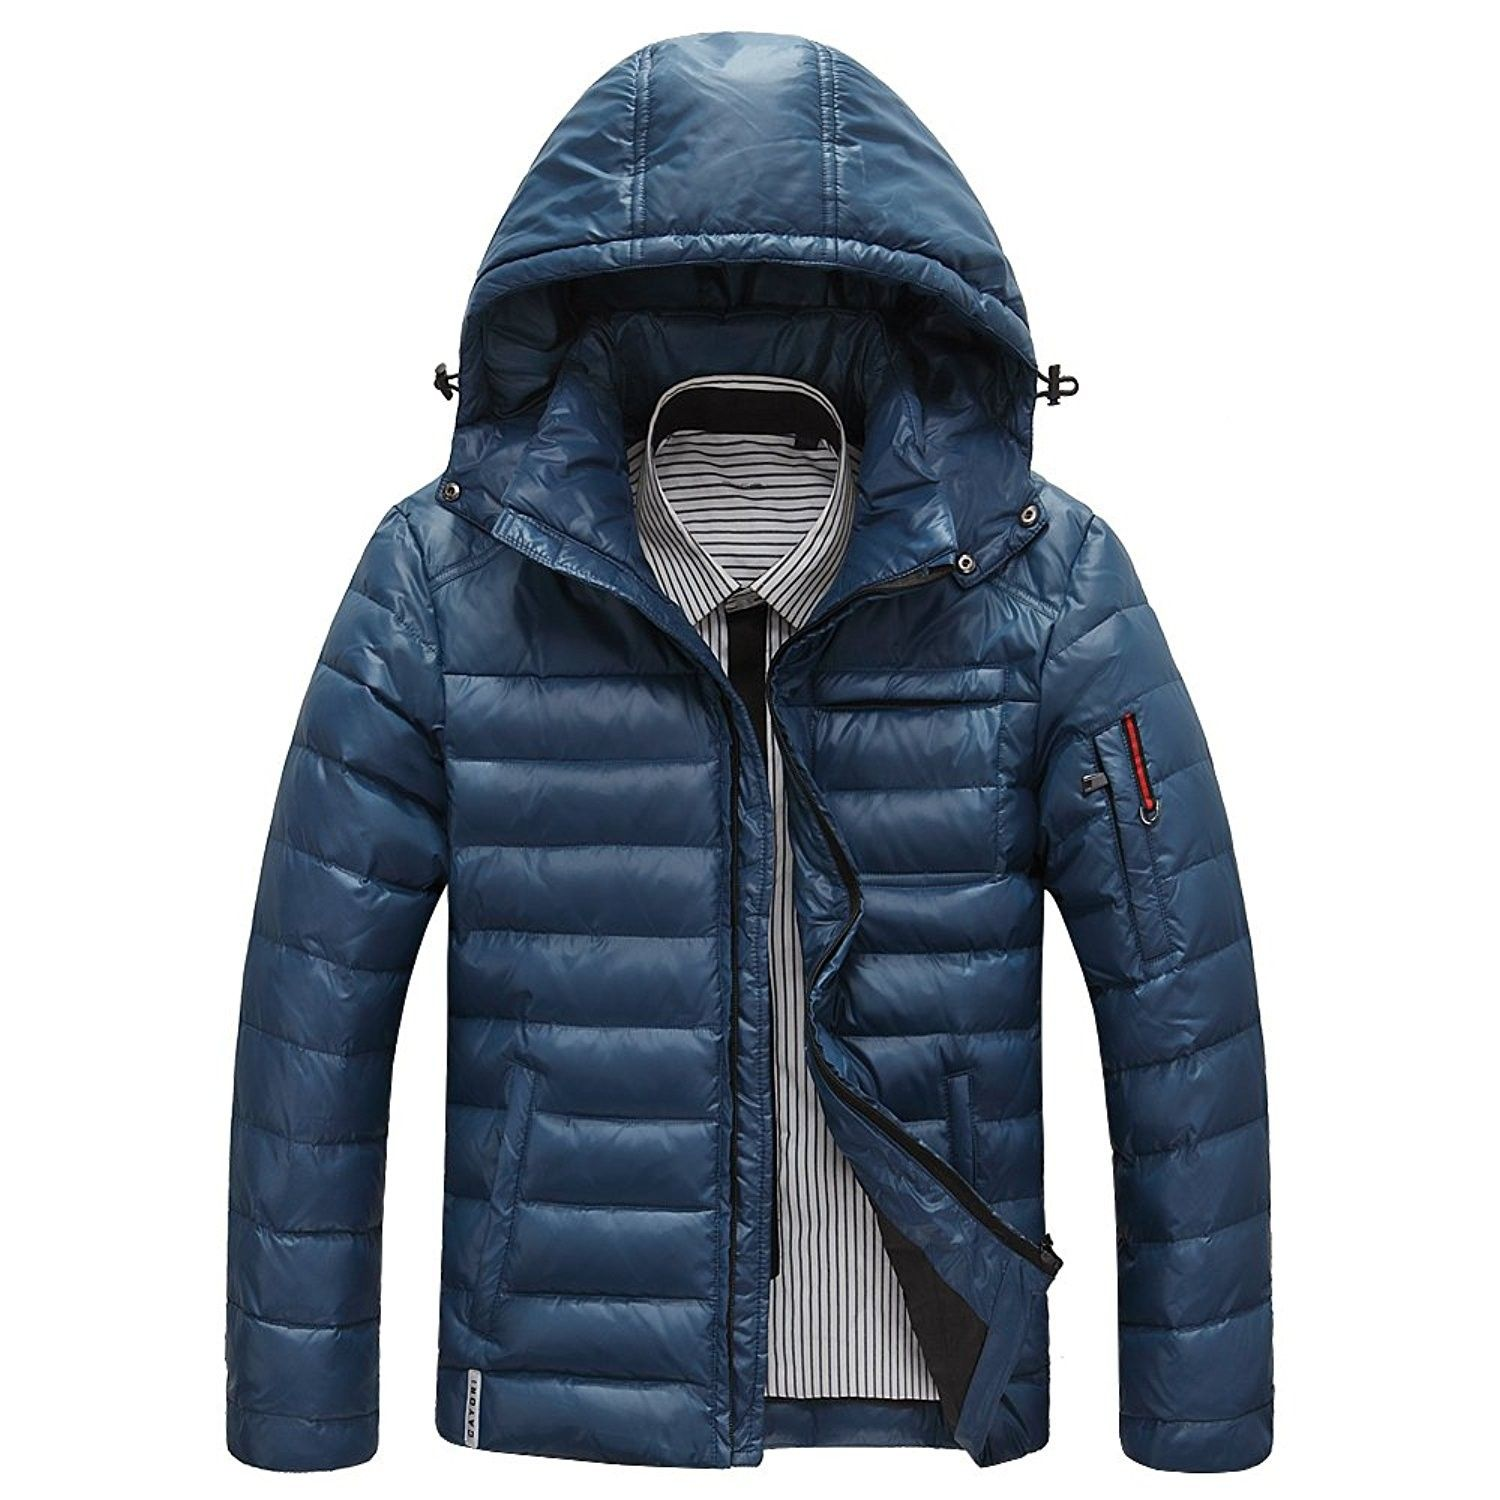 Men S Winter Down Jacket Sports Quilted Puffer Coat With Removable Hood Blue Cp1873h8wkd Men S Clothin Mens Down Jacket Winter Jacket Men Mens Winter Parka [ 1500 x 1500 Pixel ]